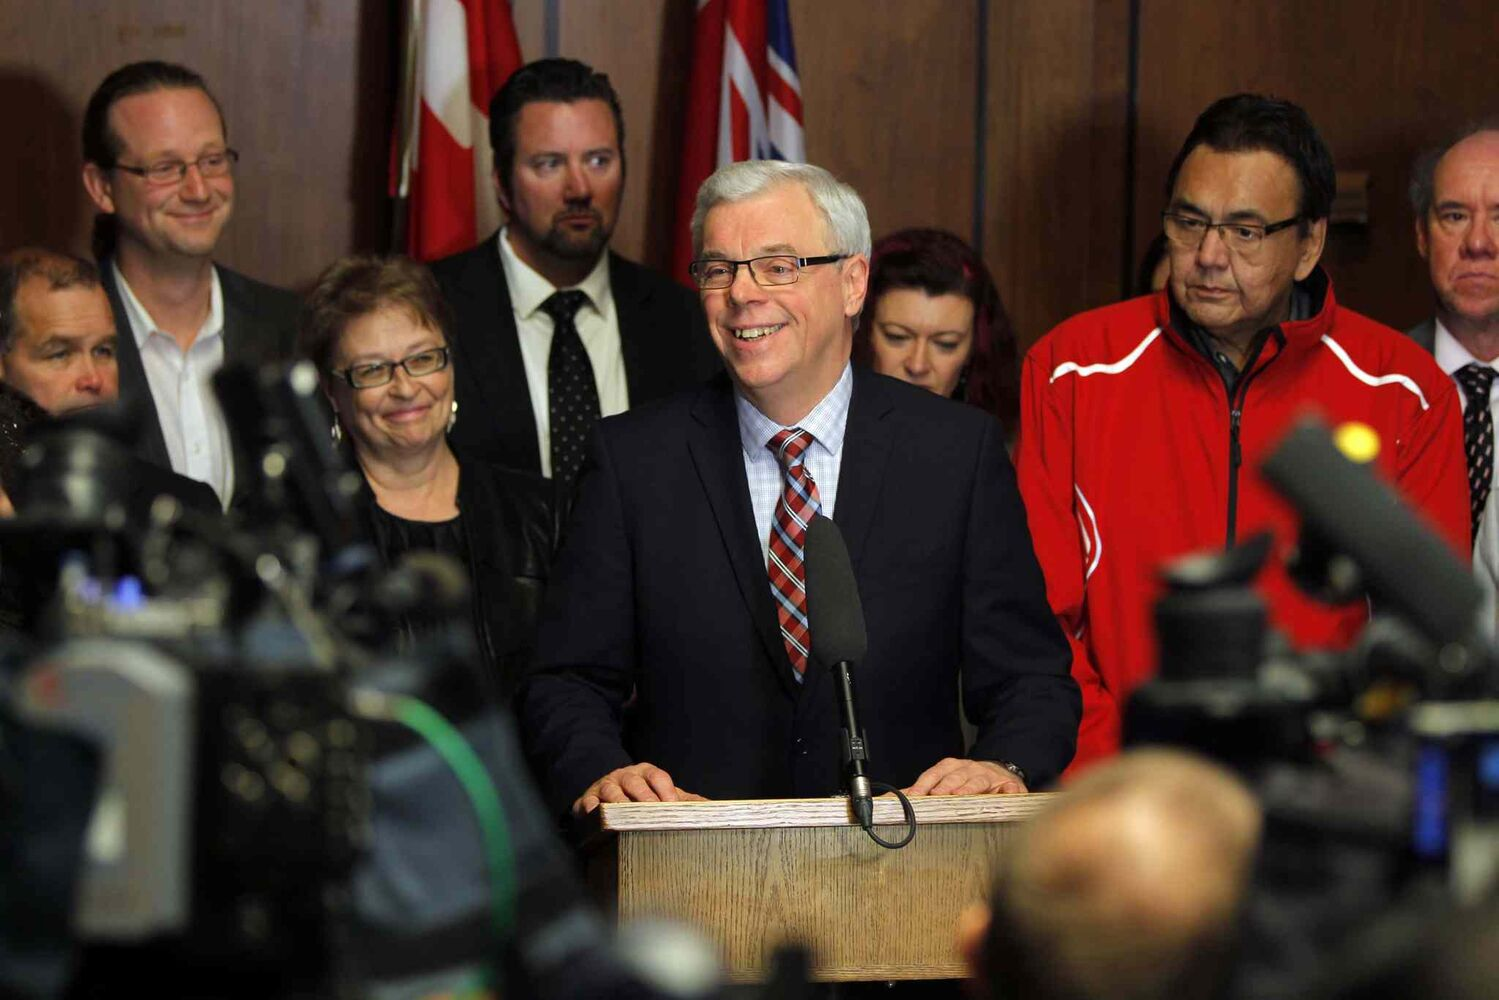 Premier Greg Selinger is supported by 15 members of his caucus as he announced Oct. 28 he is staying on as NDP leader despite pressure from five outspoken cabinet ministers who want him to quit. (Boris Minkevich / Winnipeg Free Press)